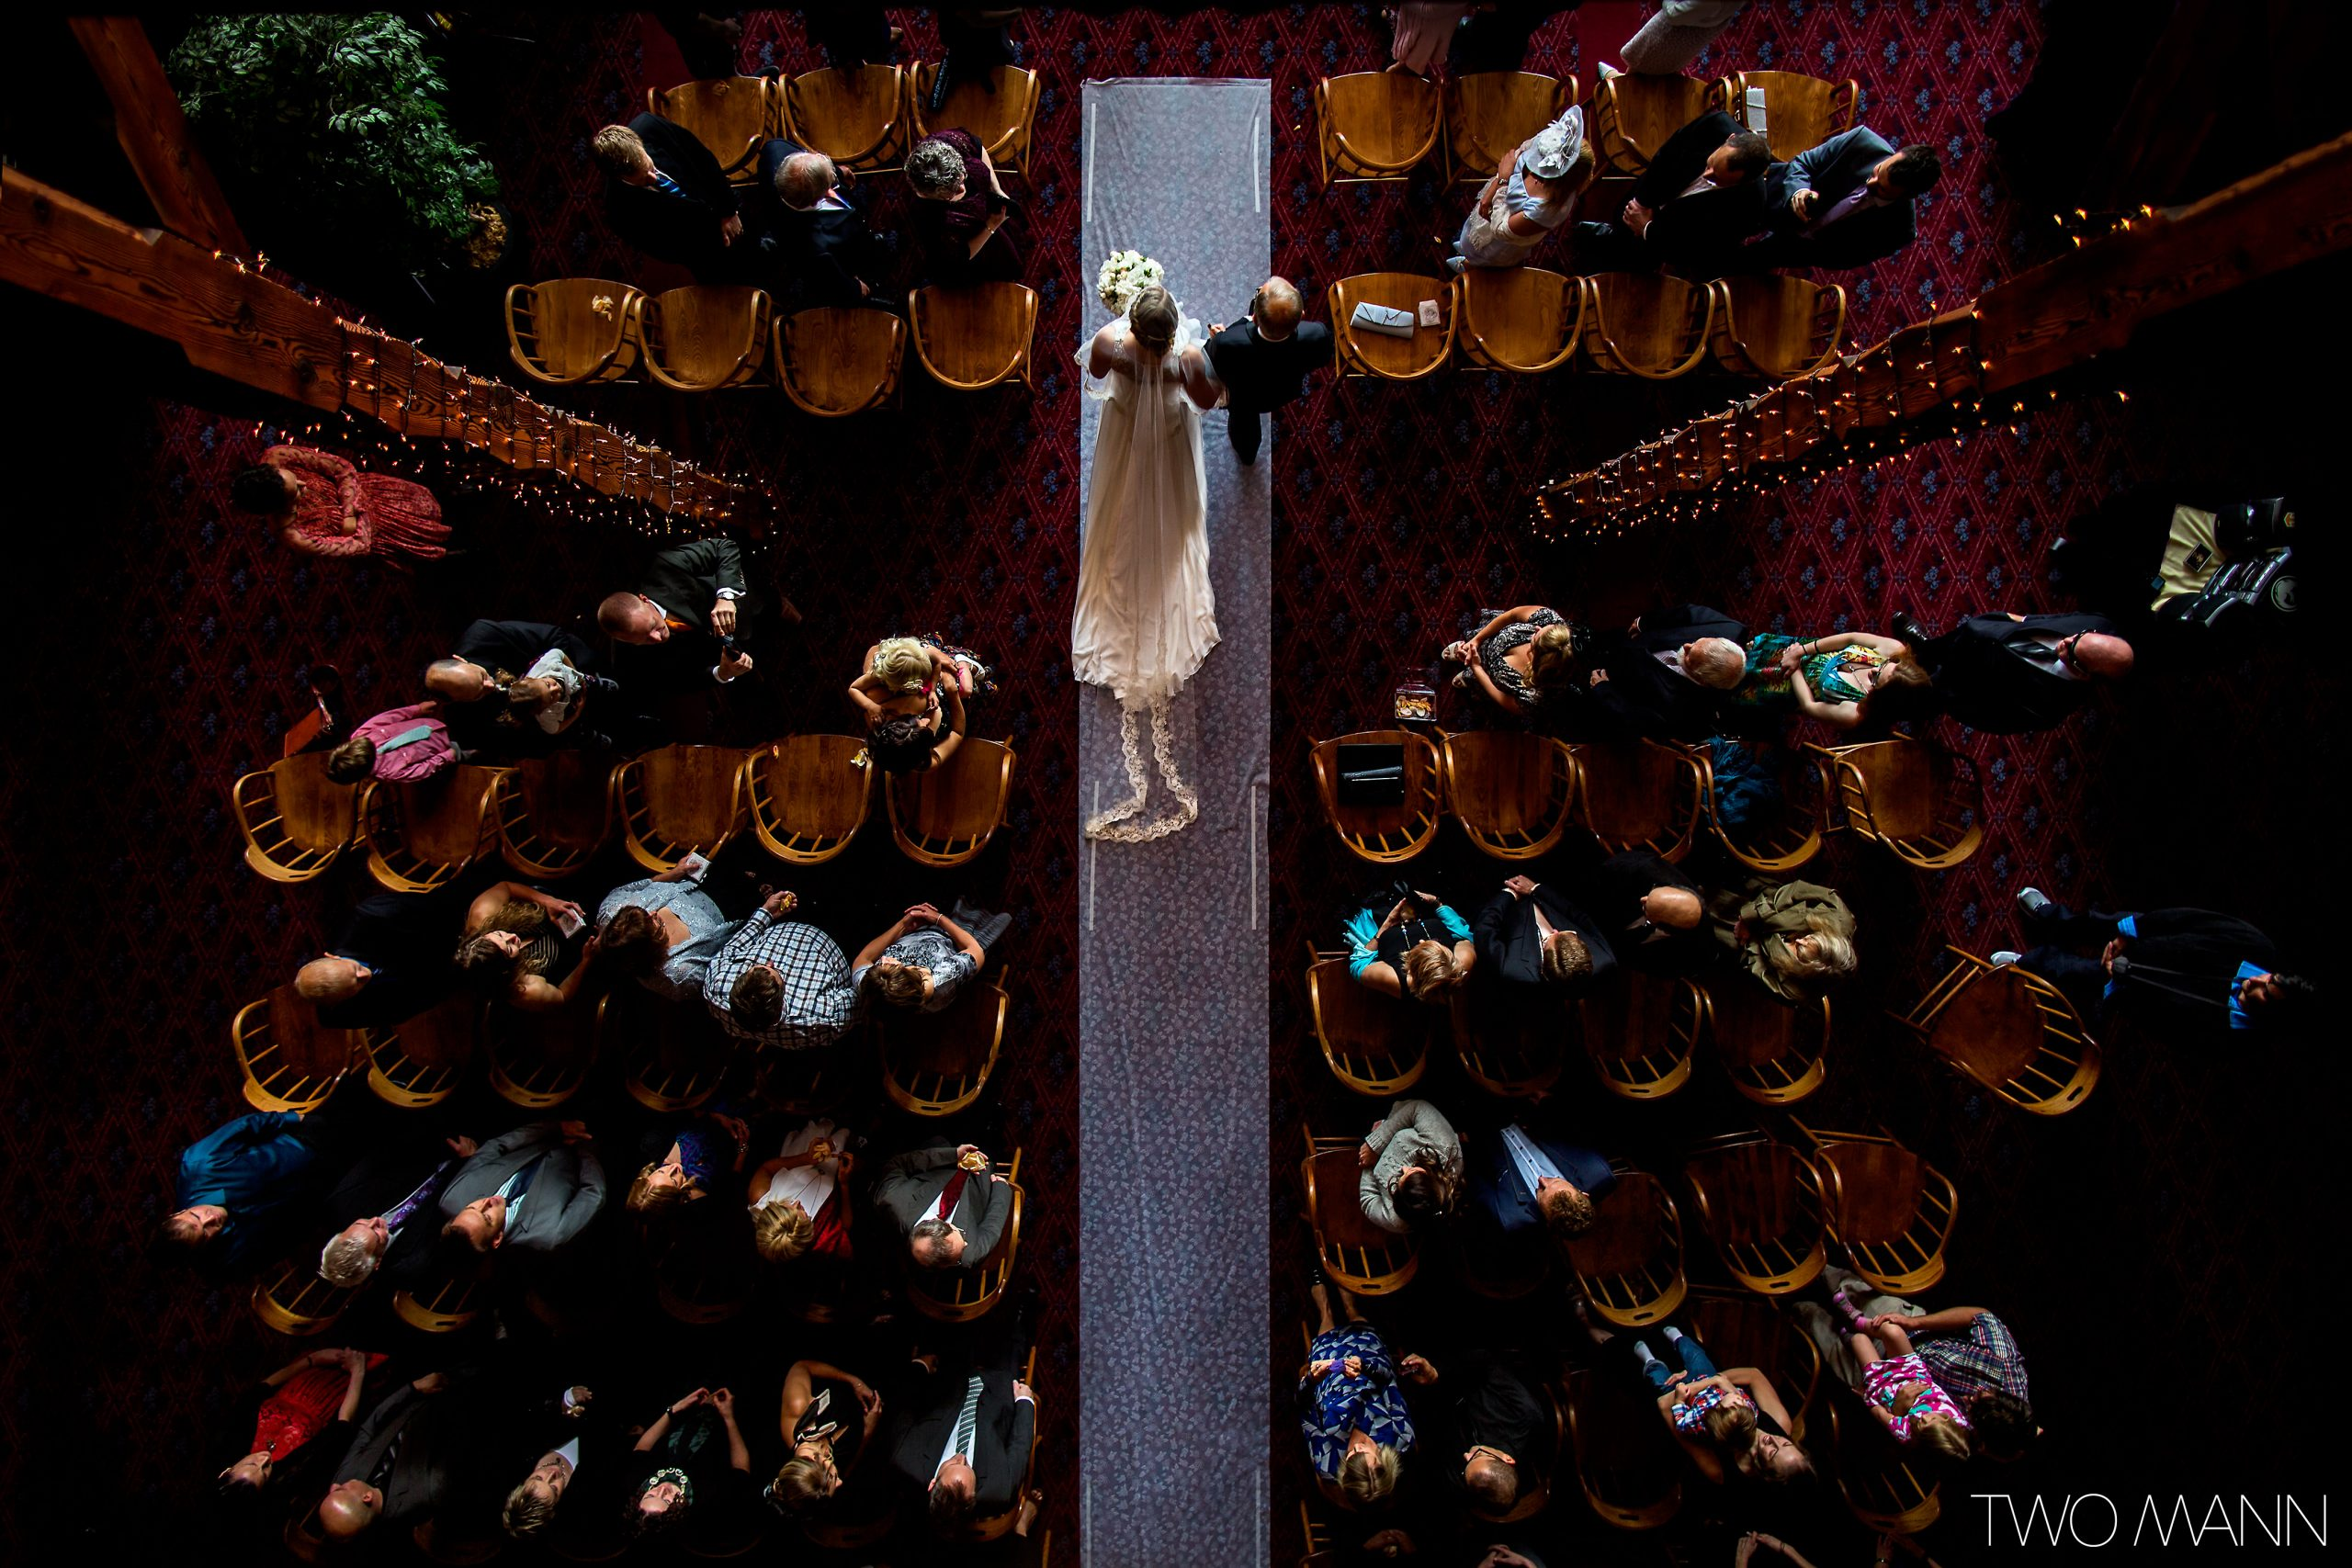 a bird's-eye view of father walking daughter down the aisle